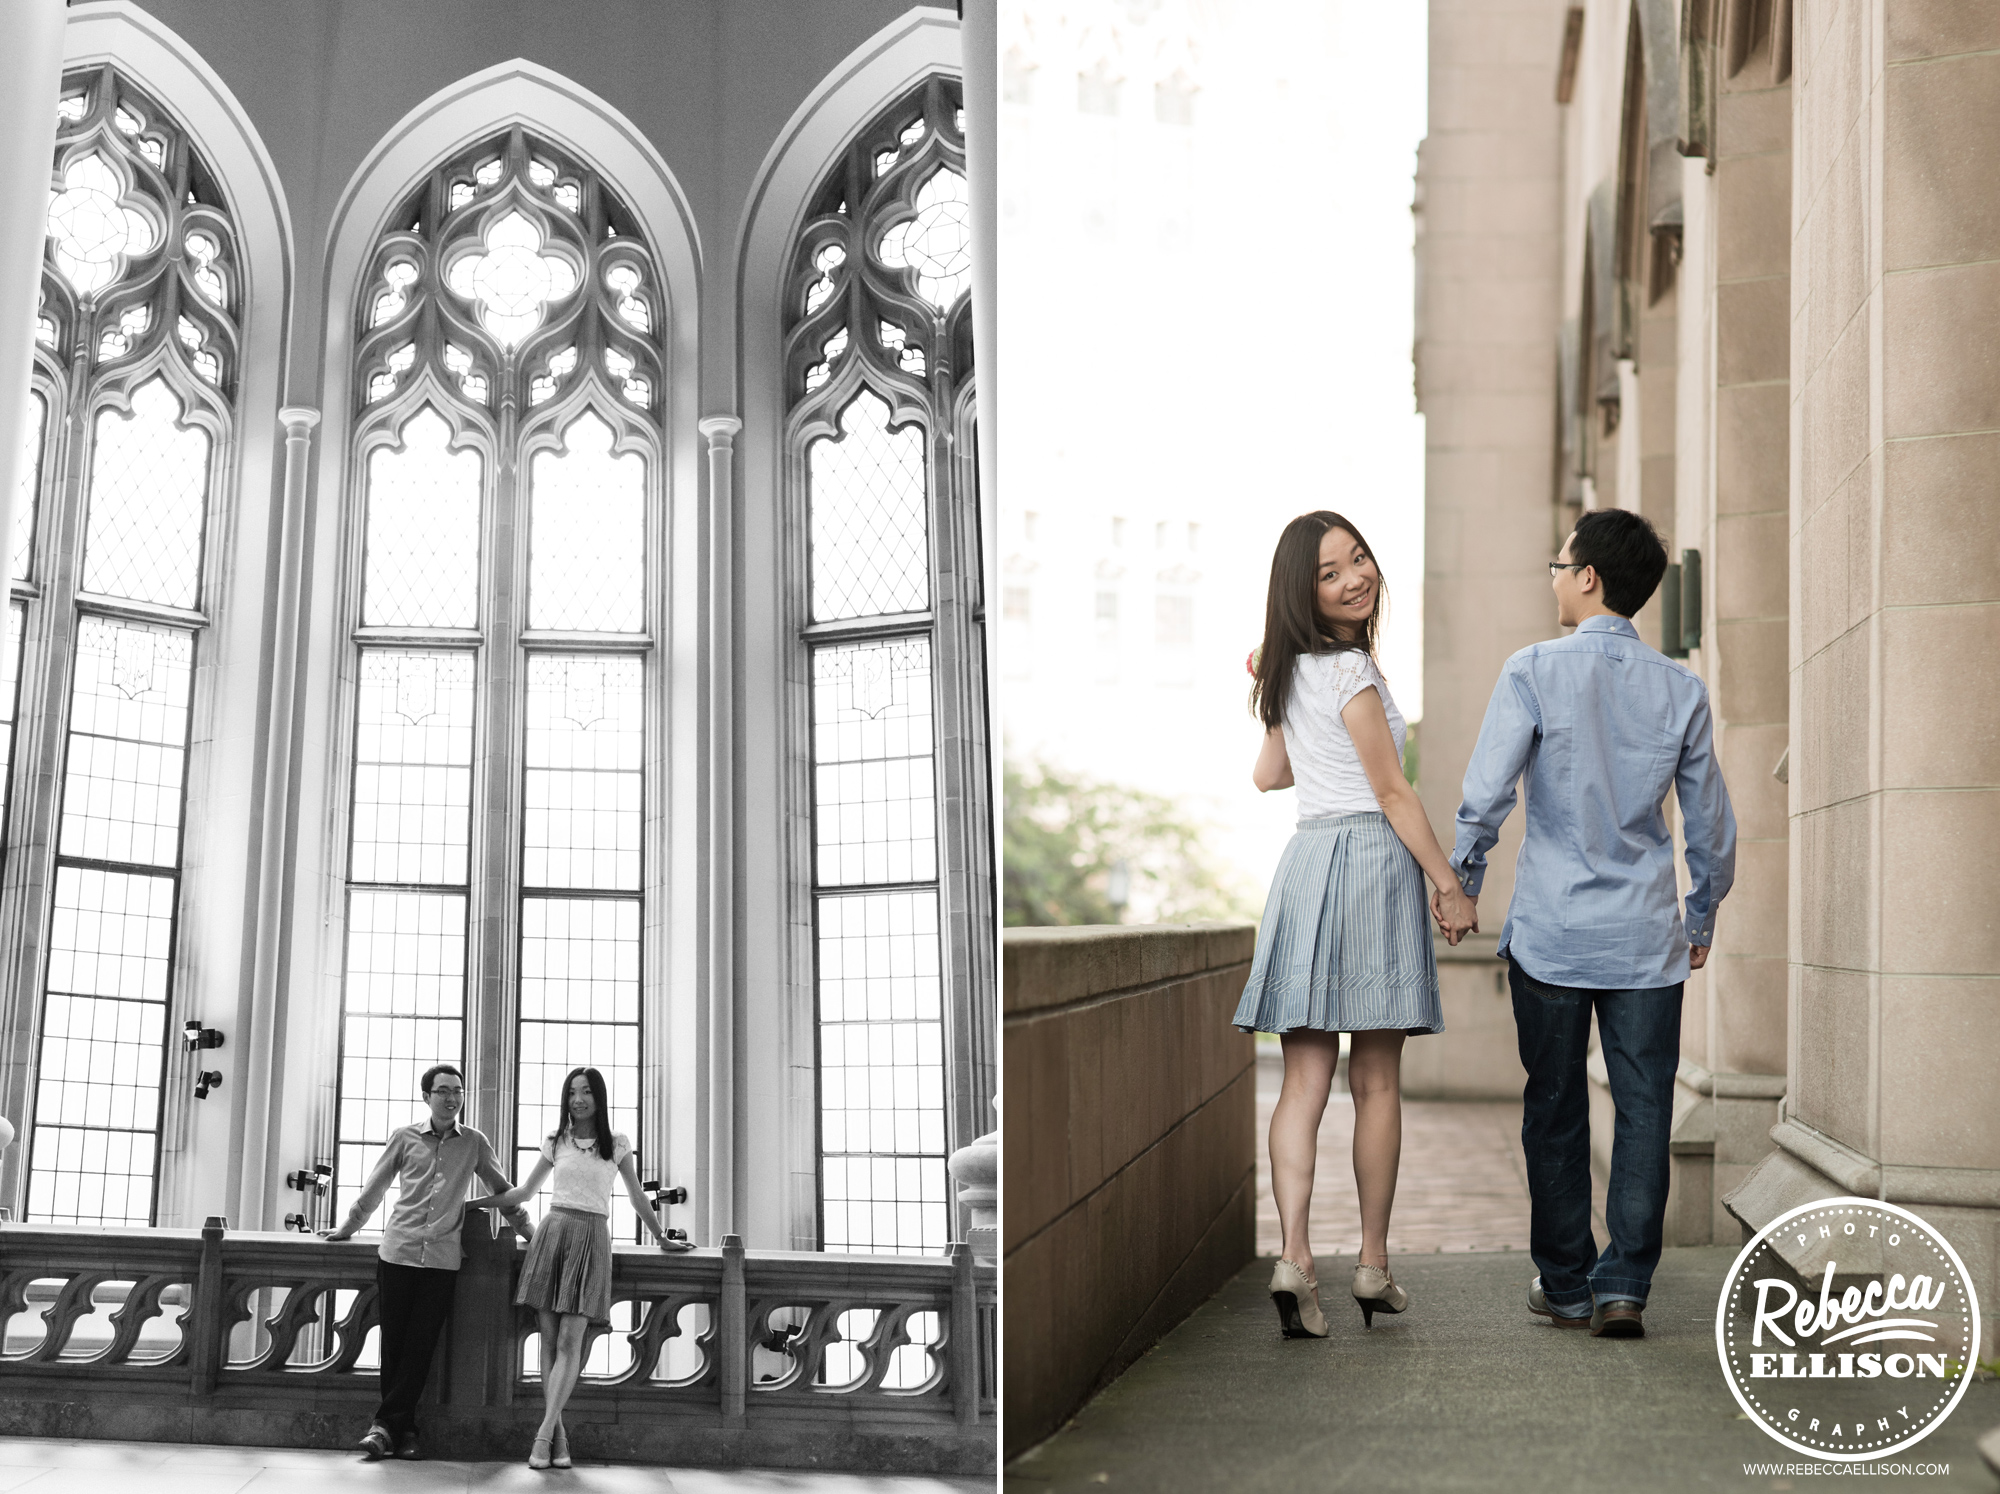 Engagement portraits at University of Washington's Suzallo Library photographed by Rebecca Ellison Photography